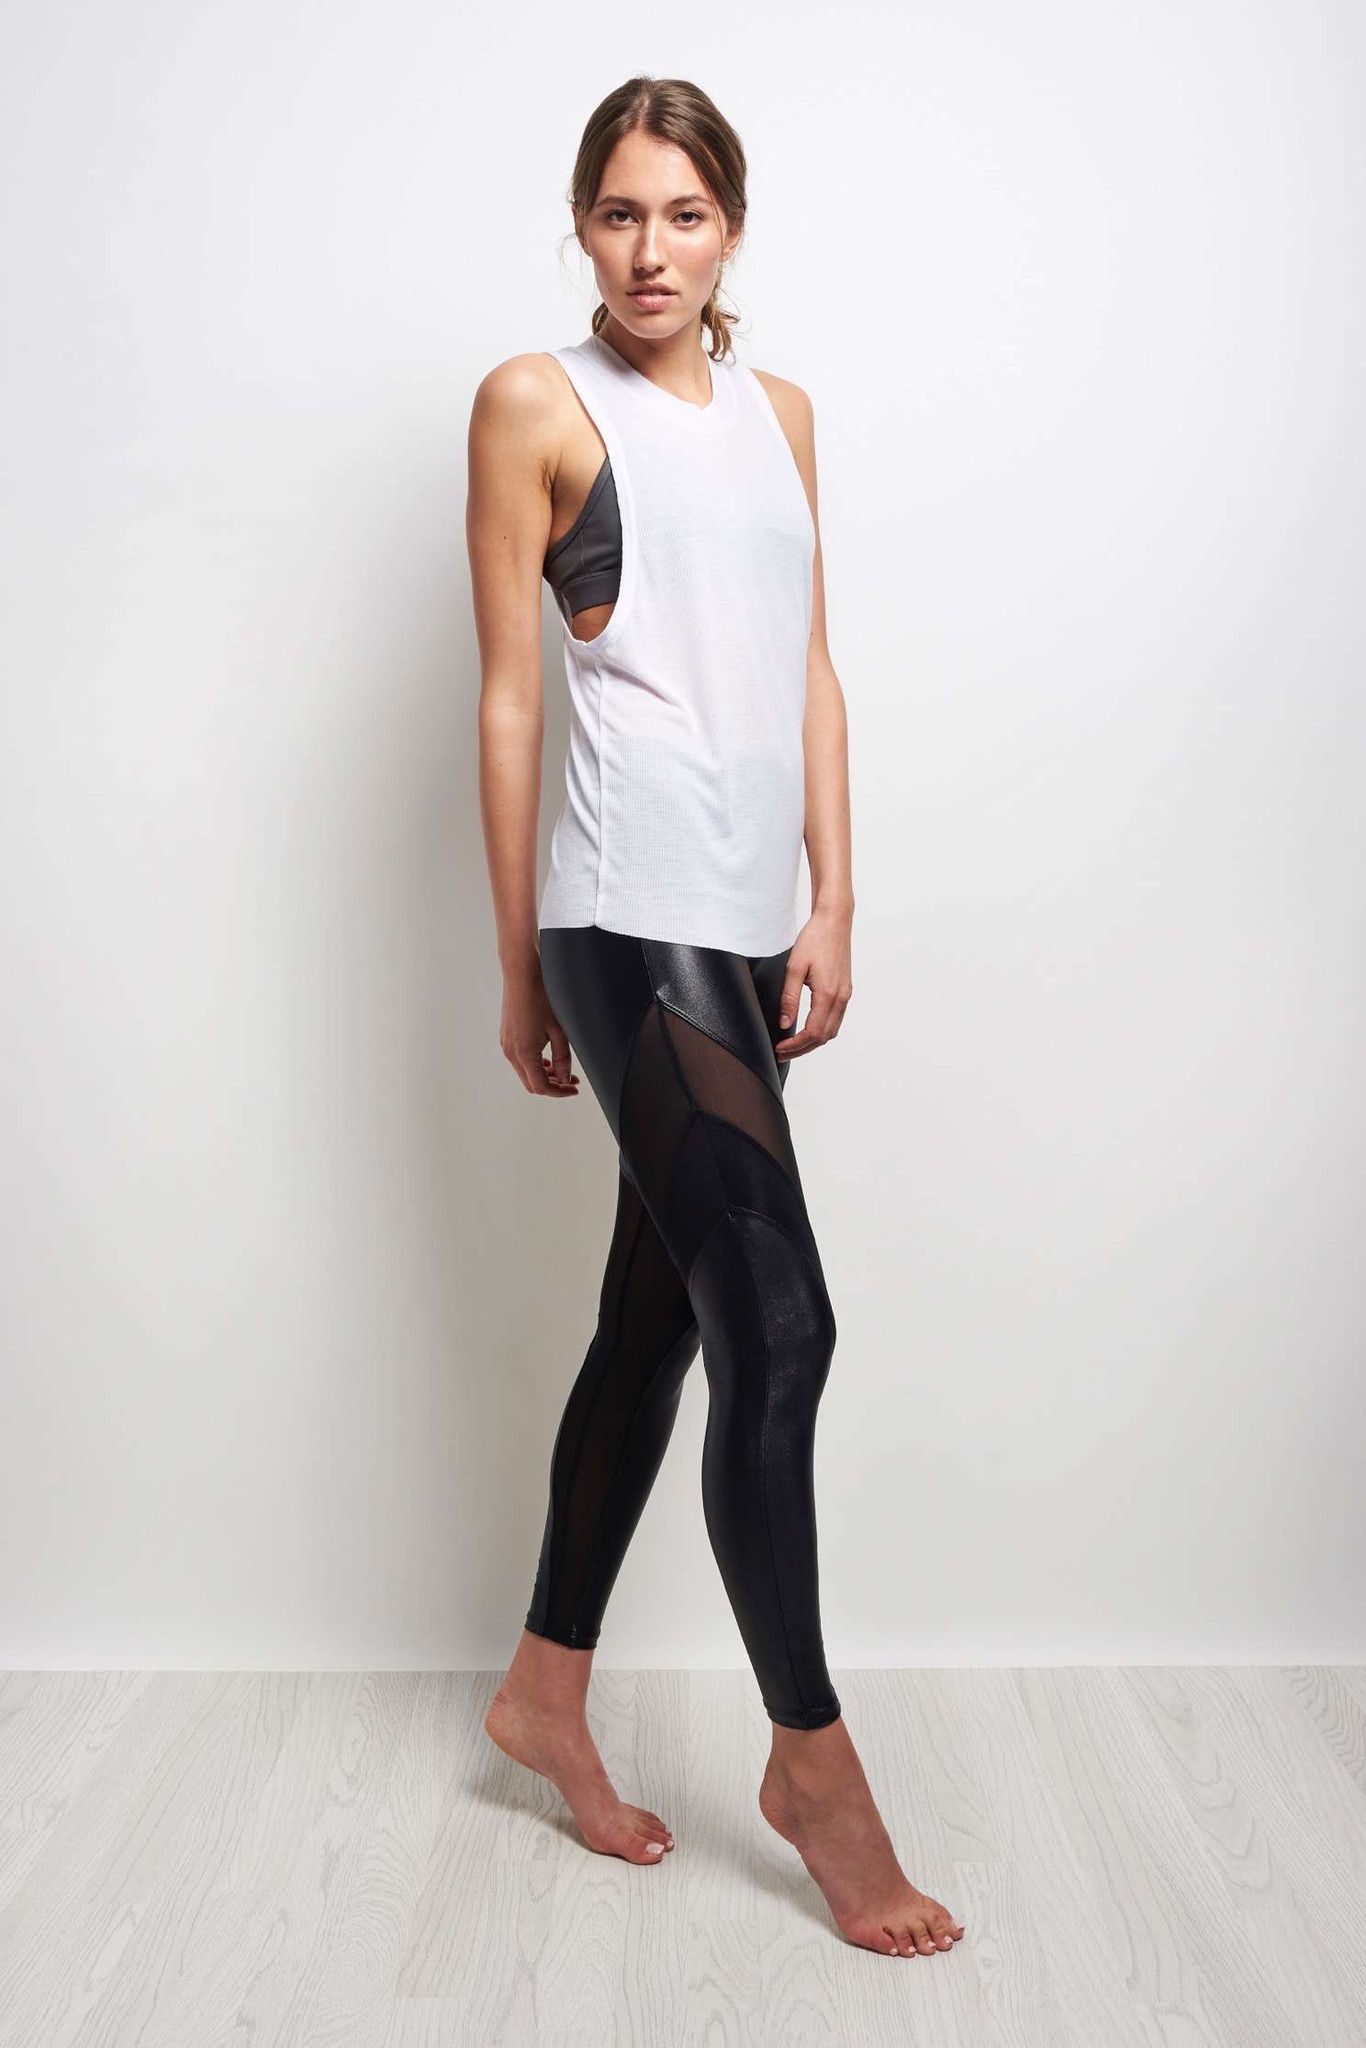 Alo Yoga Heat Wave Tank - White image 2 - The Sports Edit